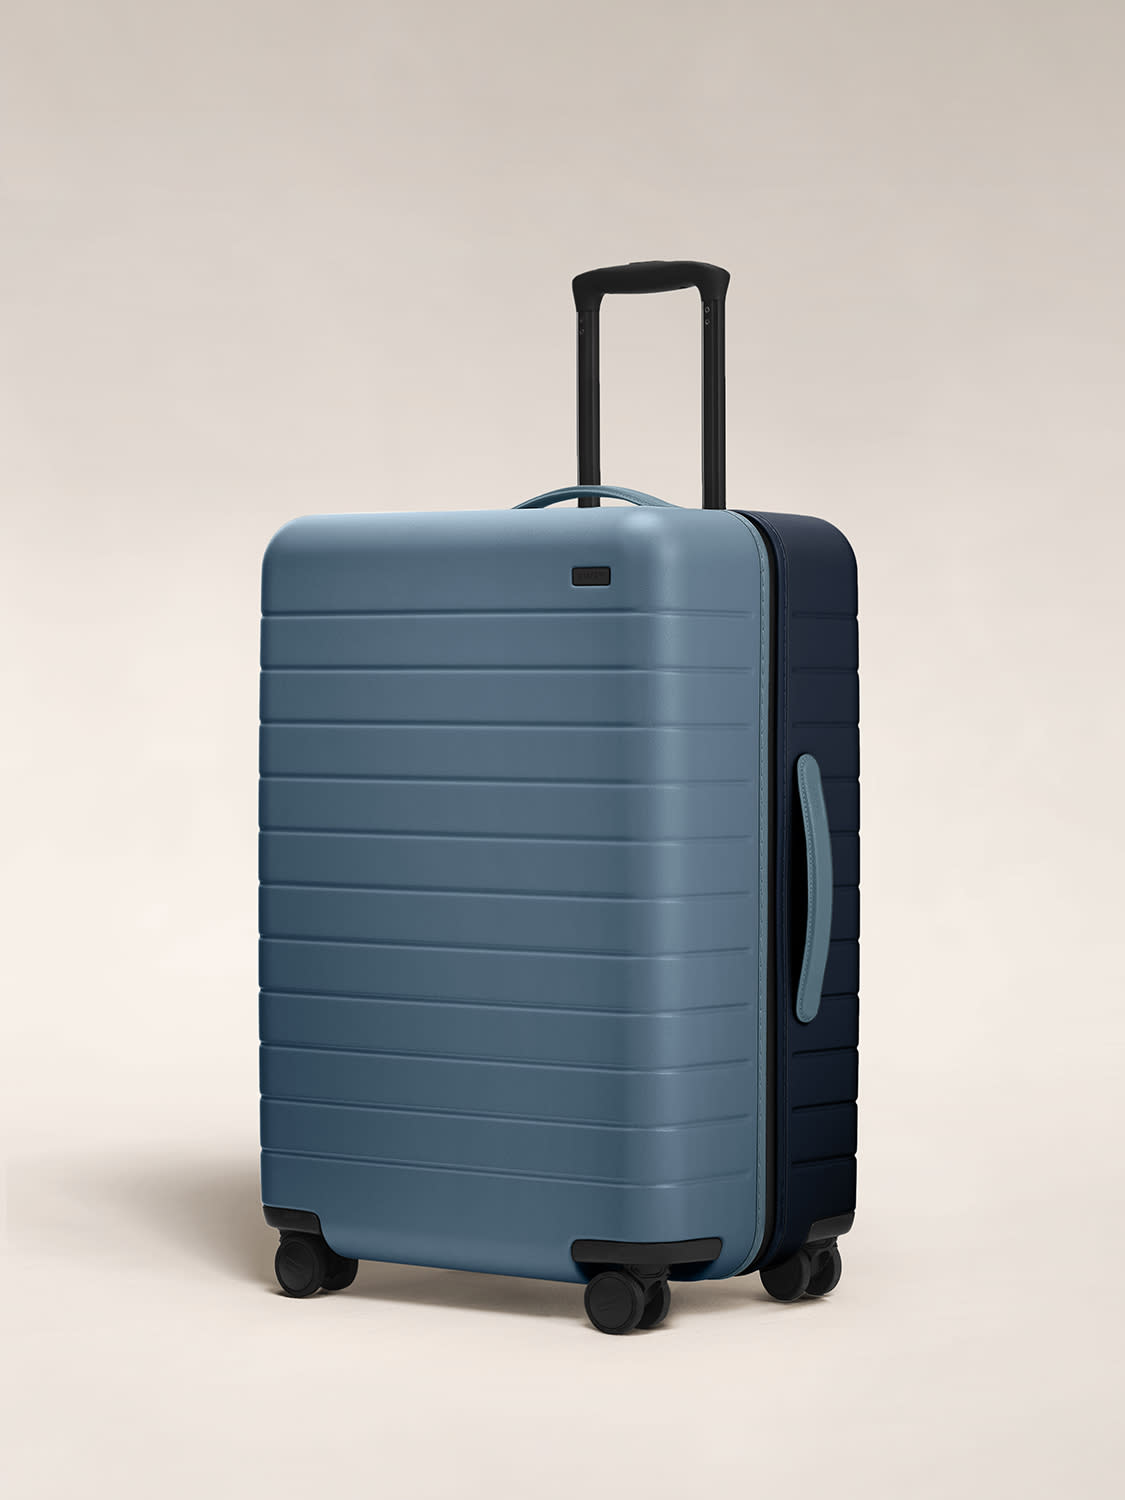 Angled view of the hardside Medium suitcase in Coast/Navy